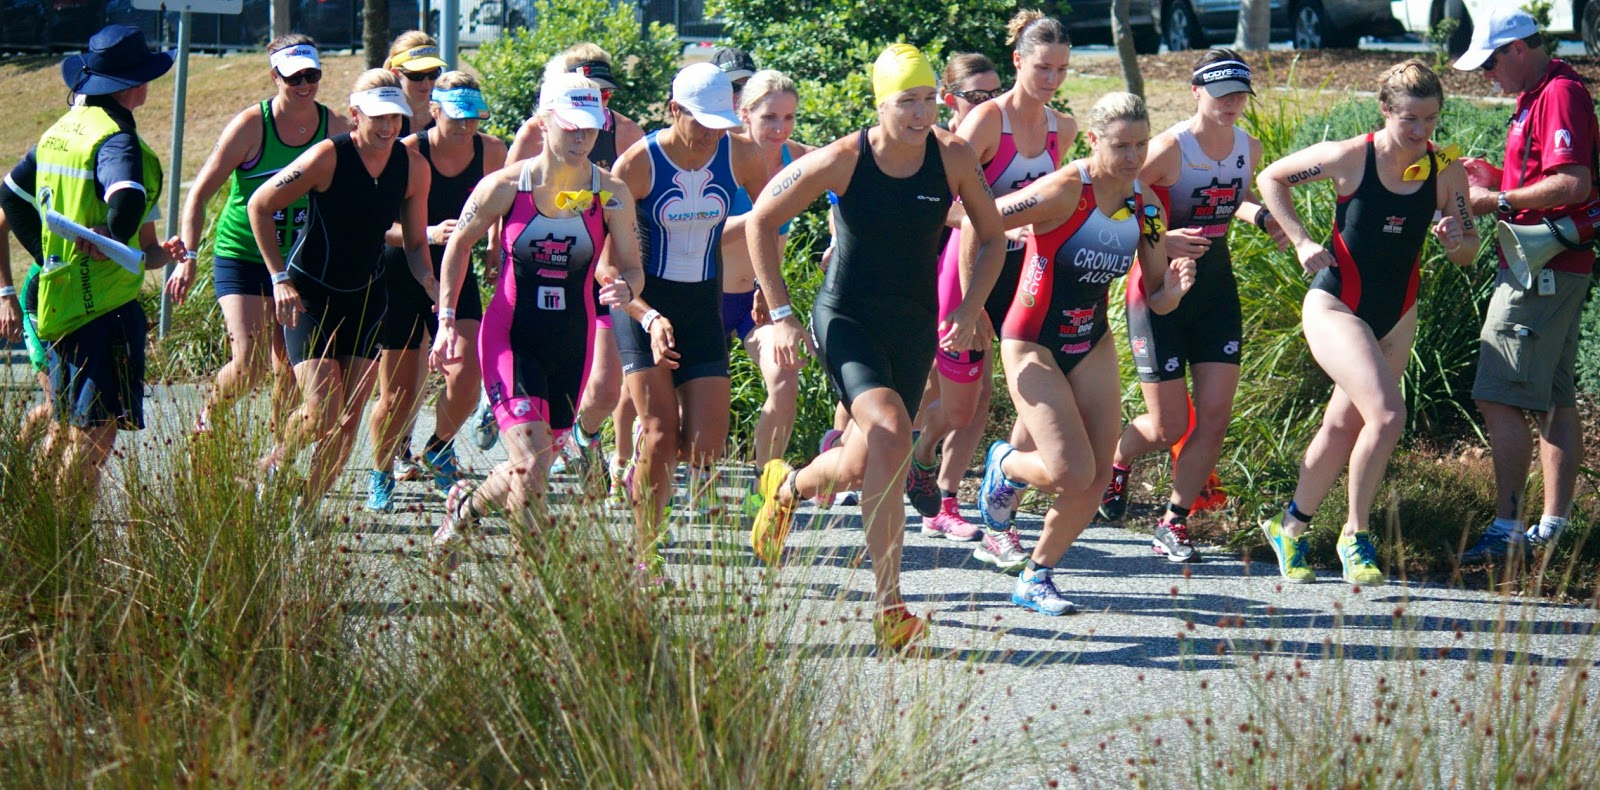 duathlon gold coast australia first leg energia sports